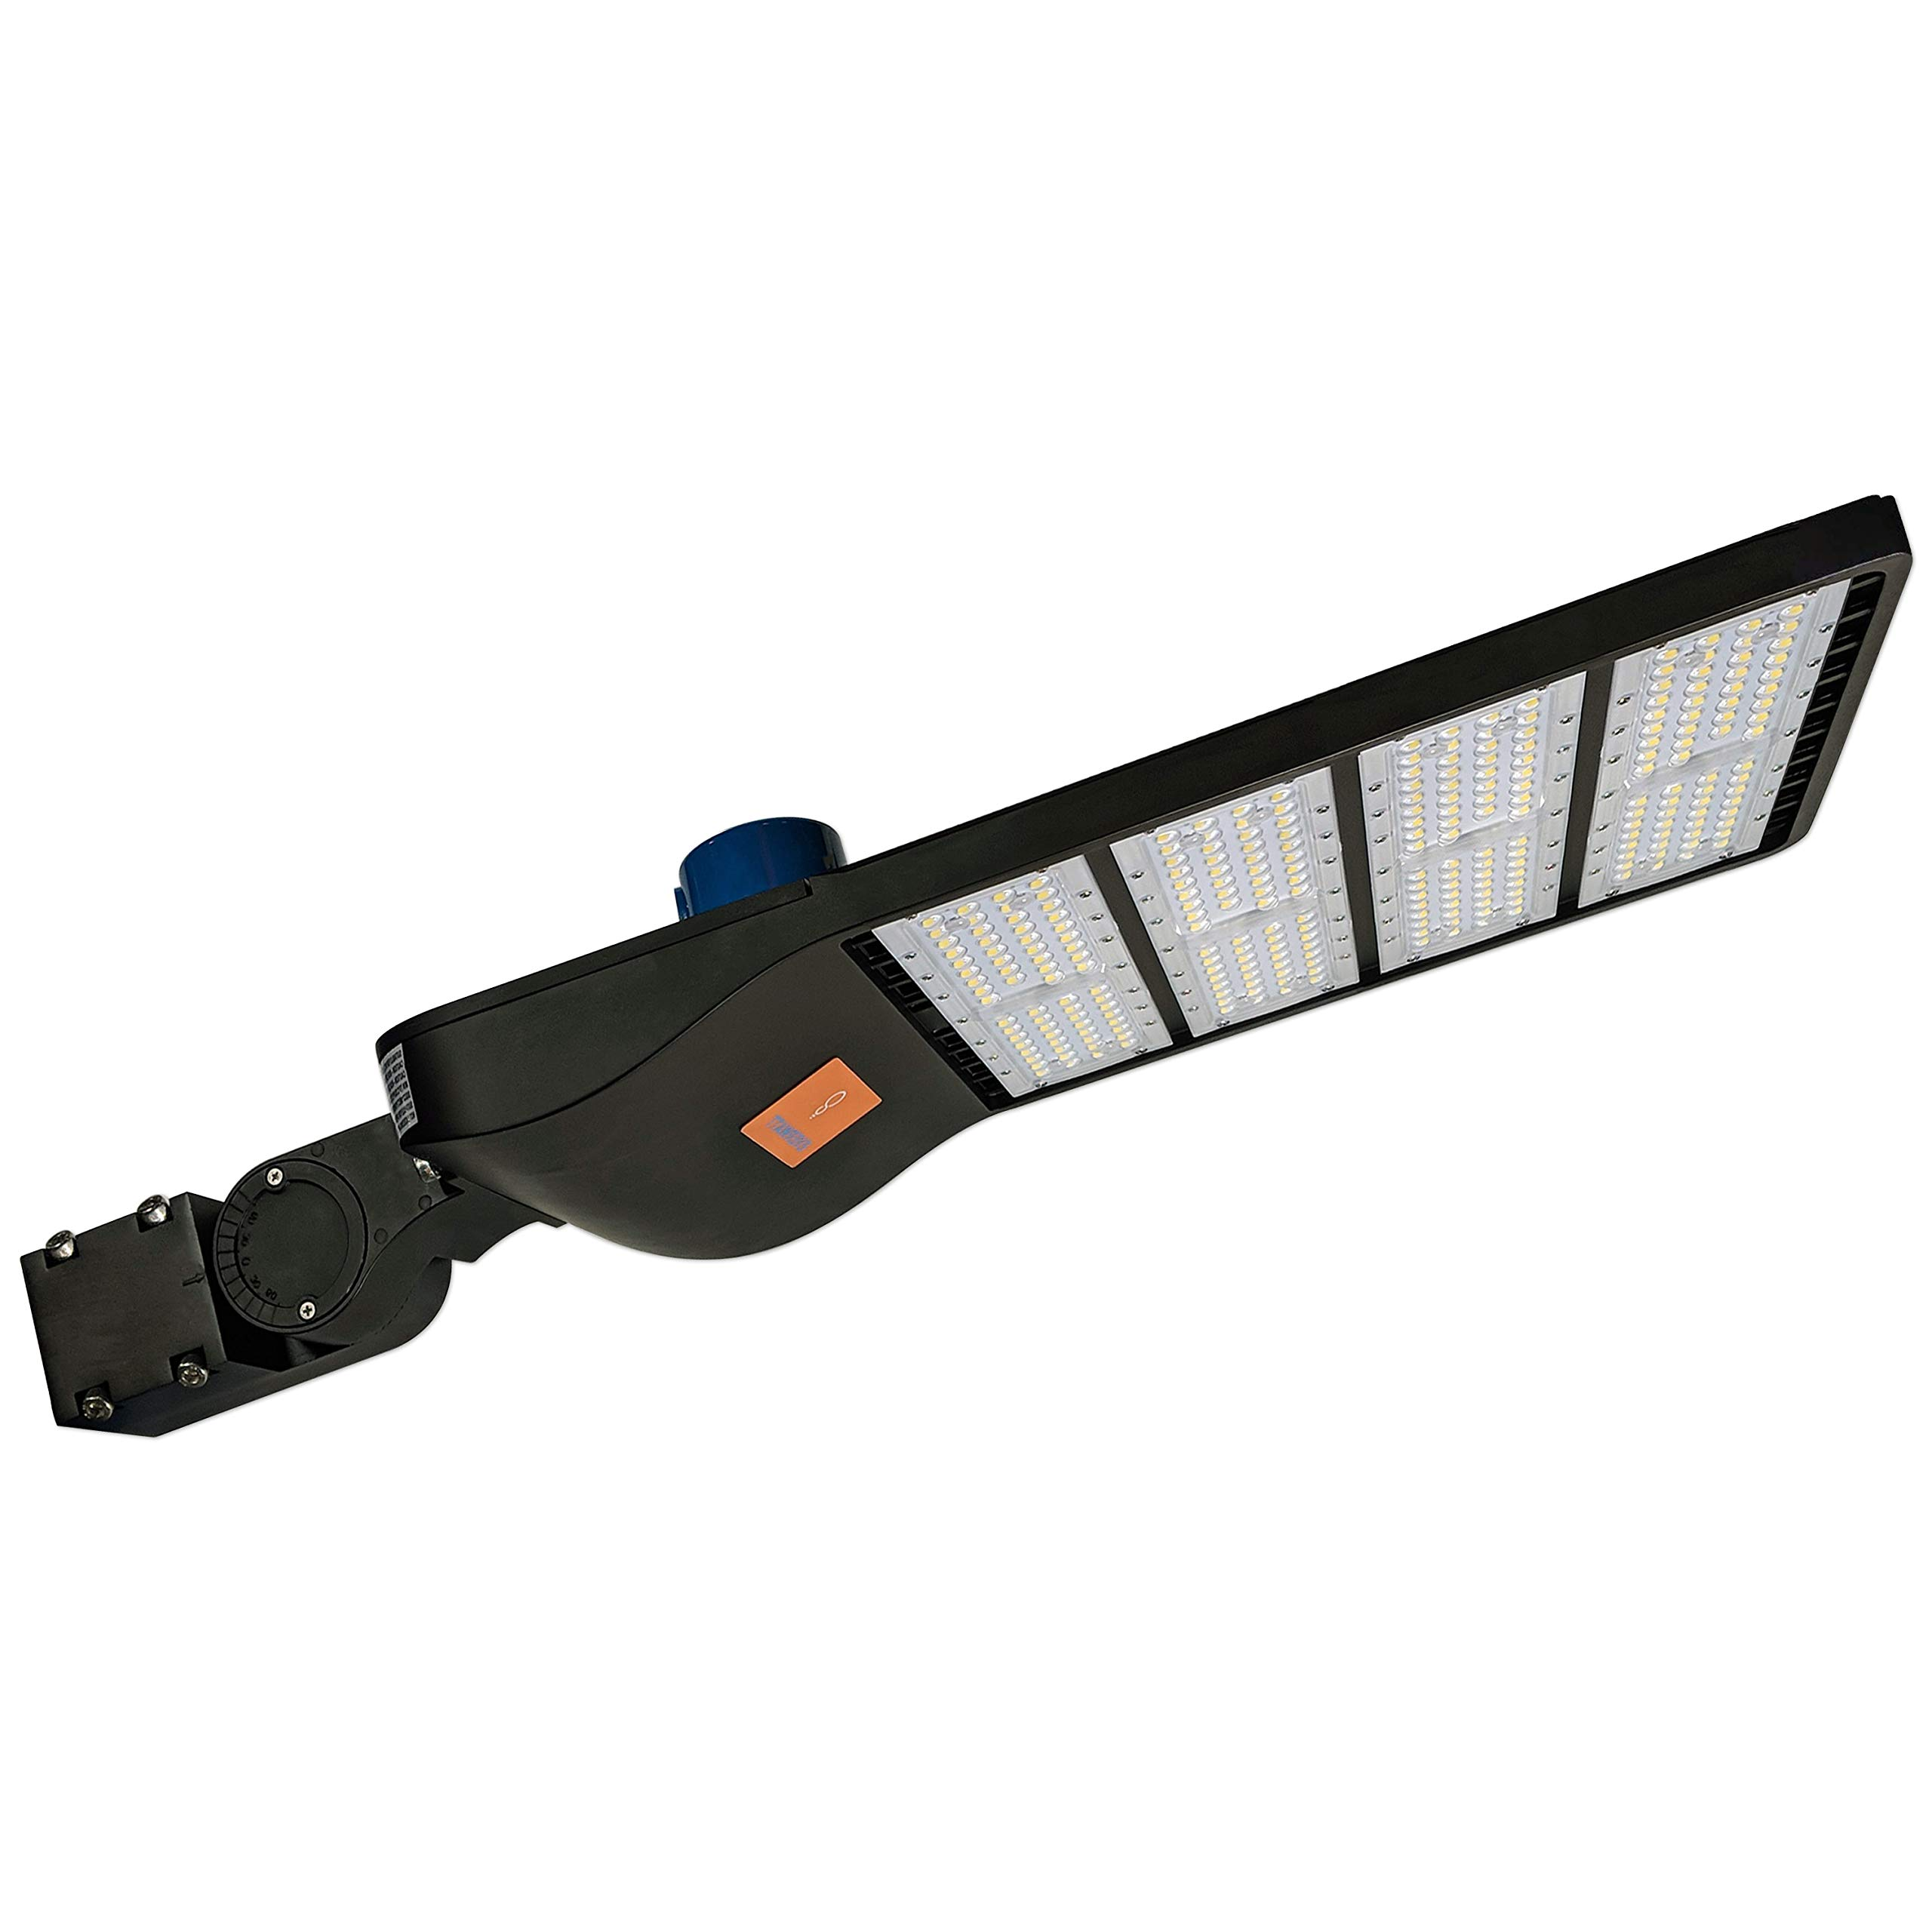 EverWatt 1000W Metal-Halide Equivalent Replacement, 300W LED Outdoor Parking Lot Light with Photocell Sensor (Shoe Box Pole Lights), 5000K, 41000 Lm, Waterproof, Slip Fit Mount, Surge Protector